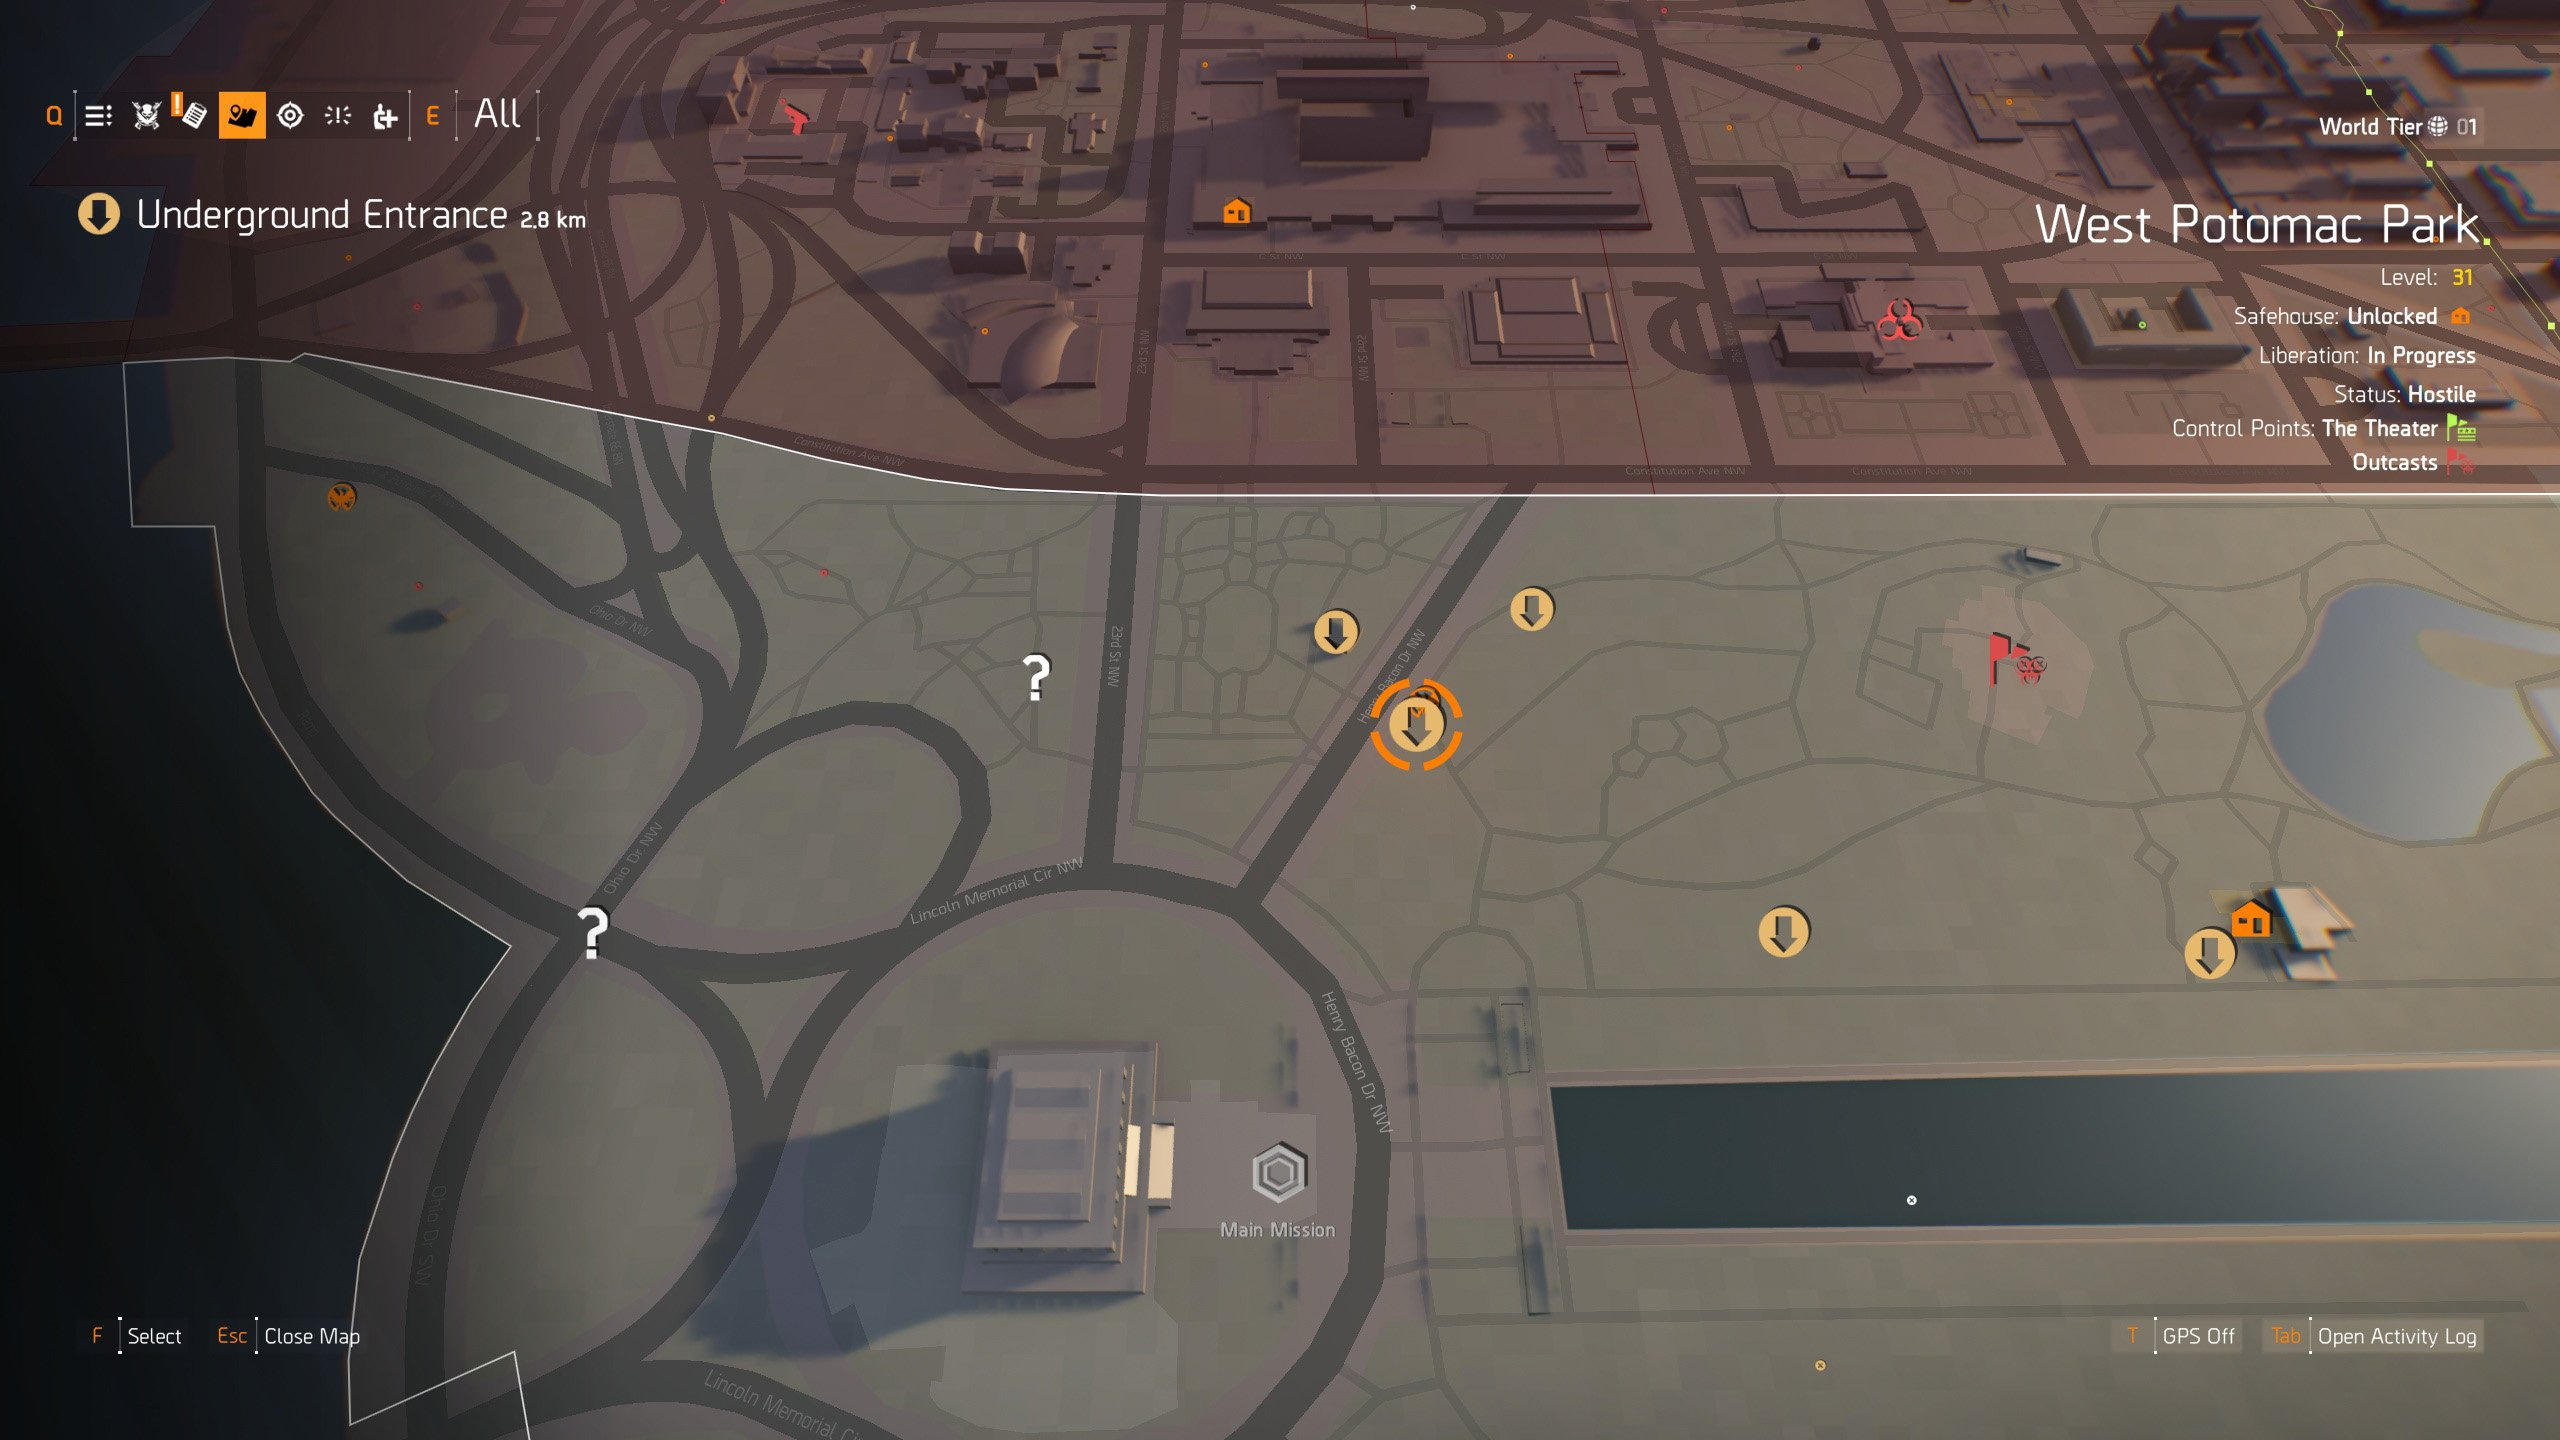 Ghoul Hunter Mask location in The Division 2 - starting the puzzle